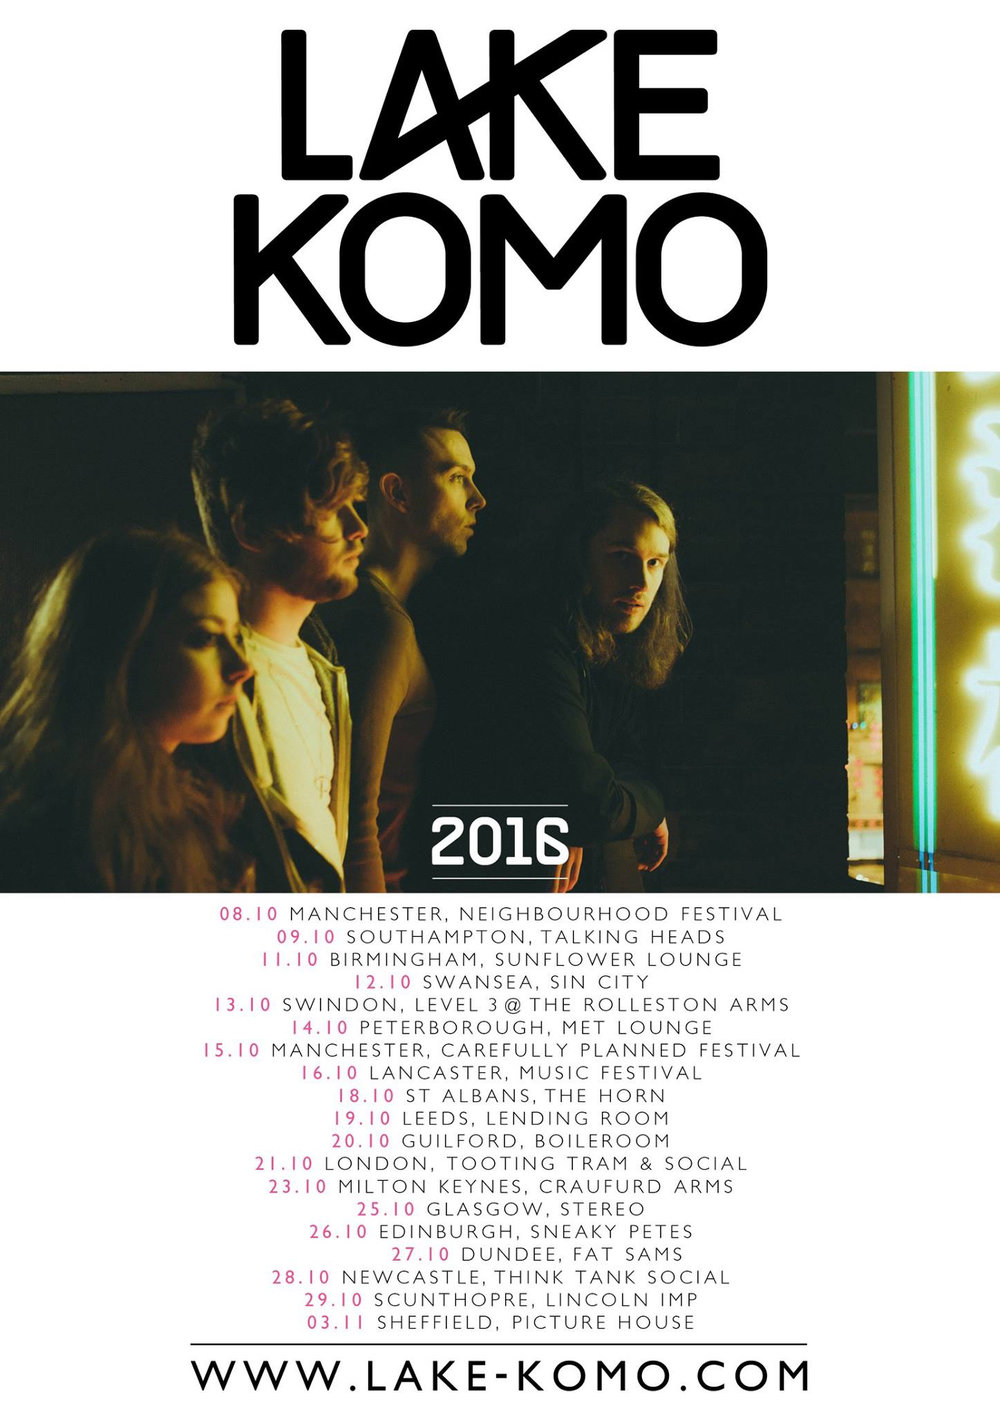 Lake Komo October '16 Tour Poster.jpg